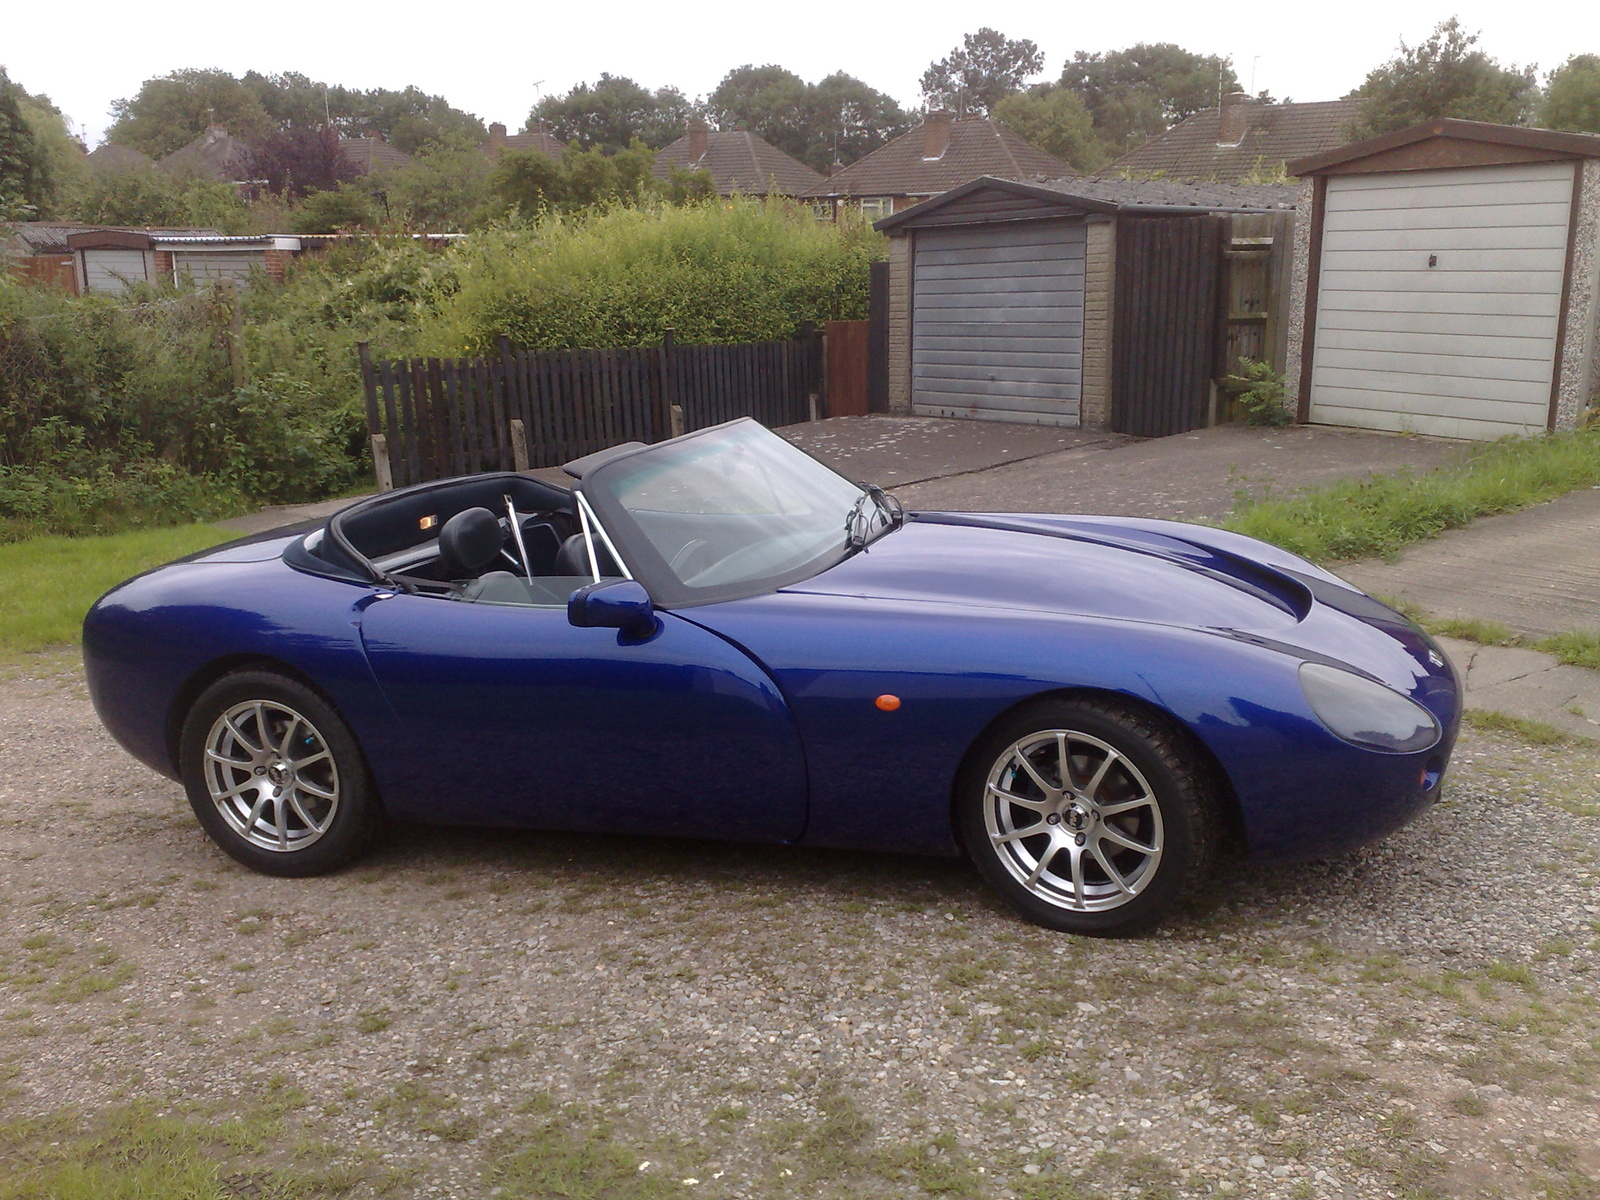 Tvr griffith photo - 6